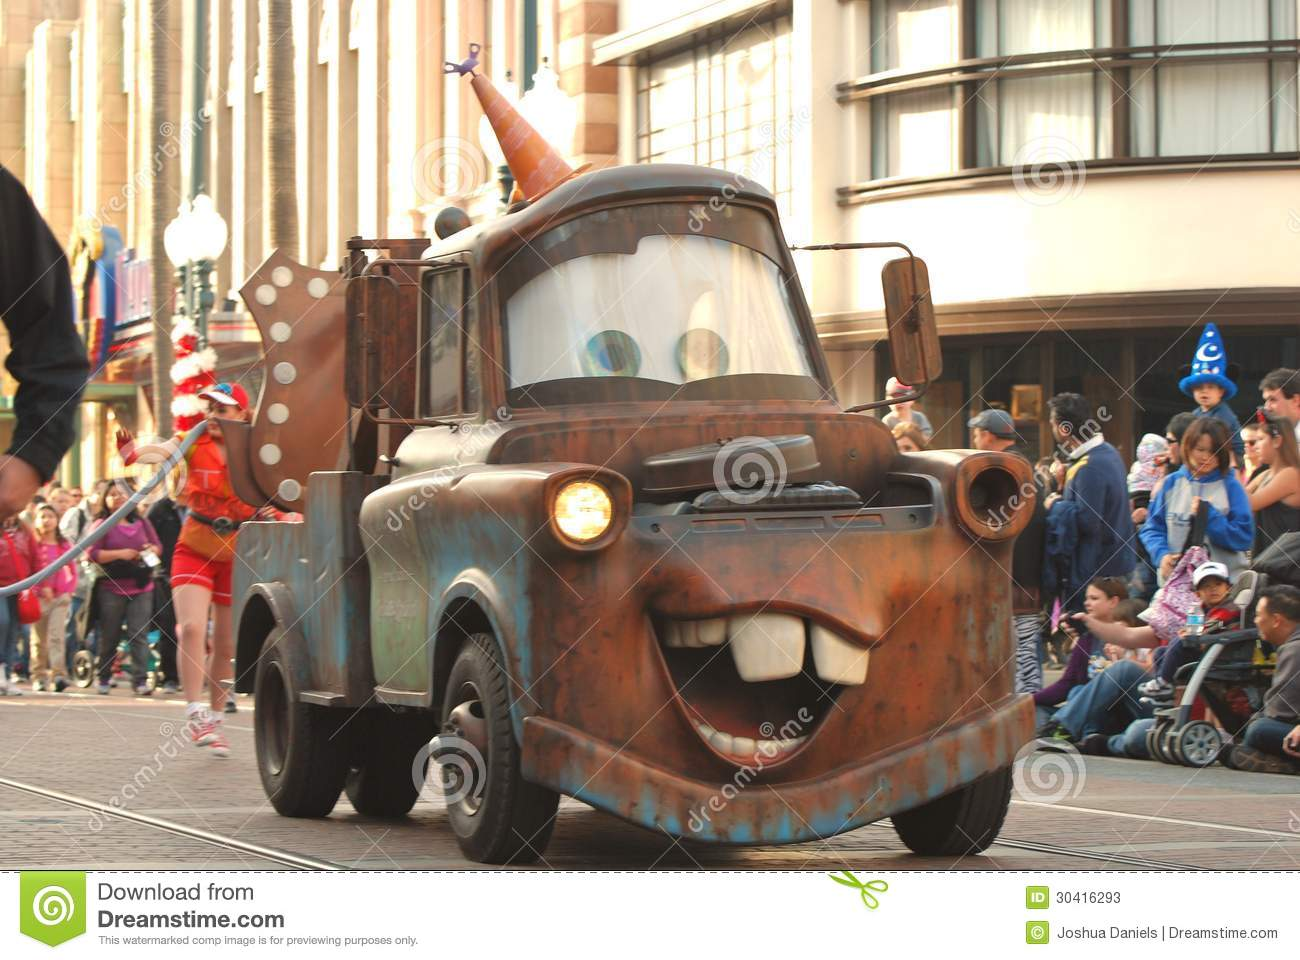 Old Car Wallpaper Download Tow Mater From The Pixar Movie Cars In A Parade At